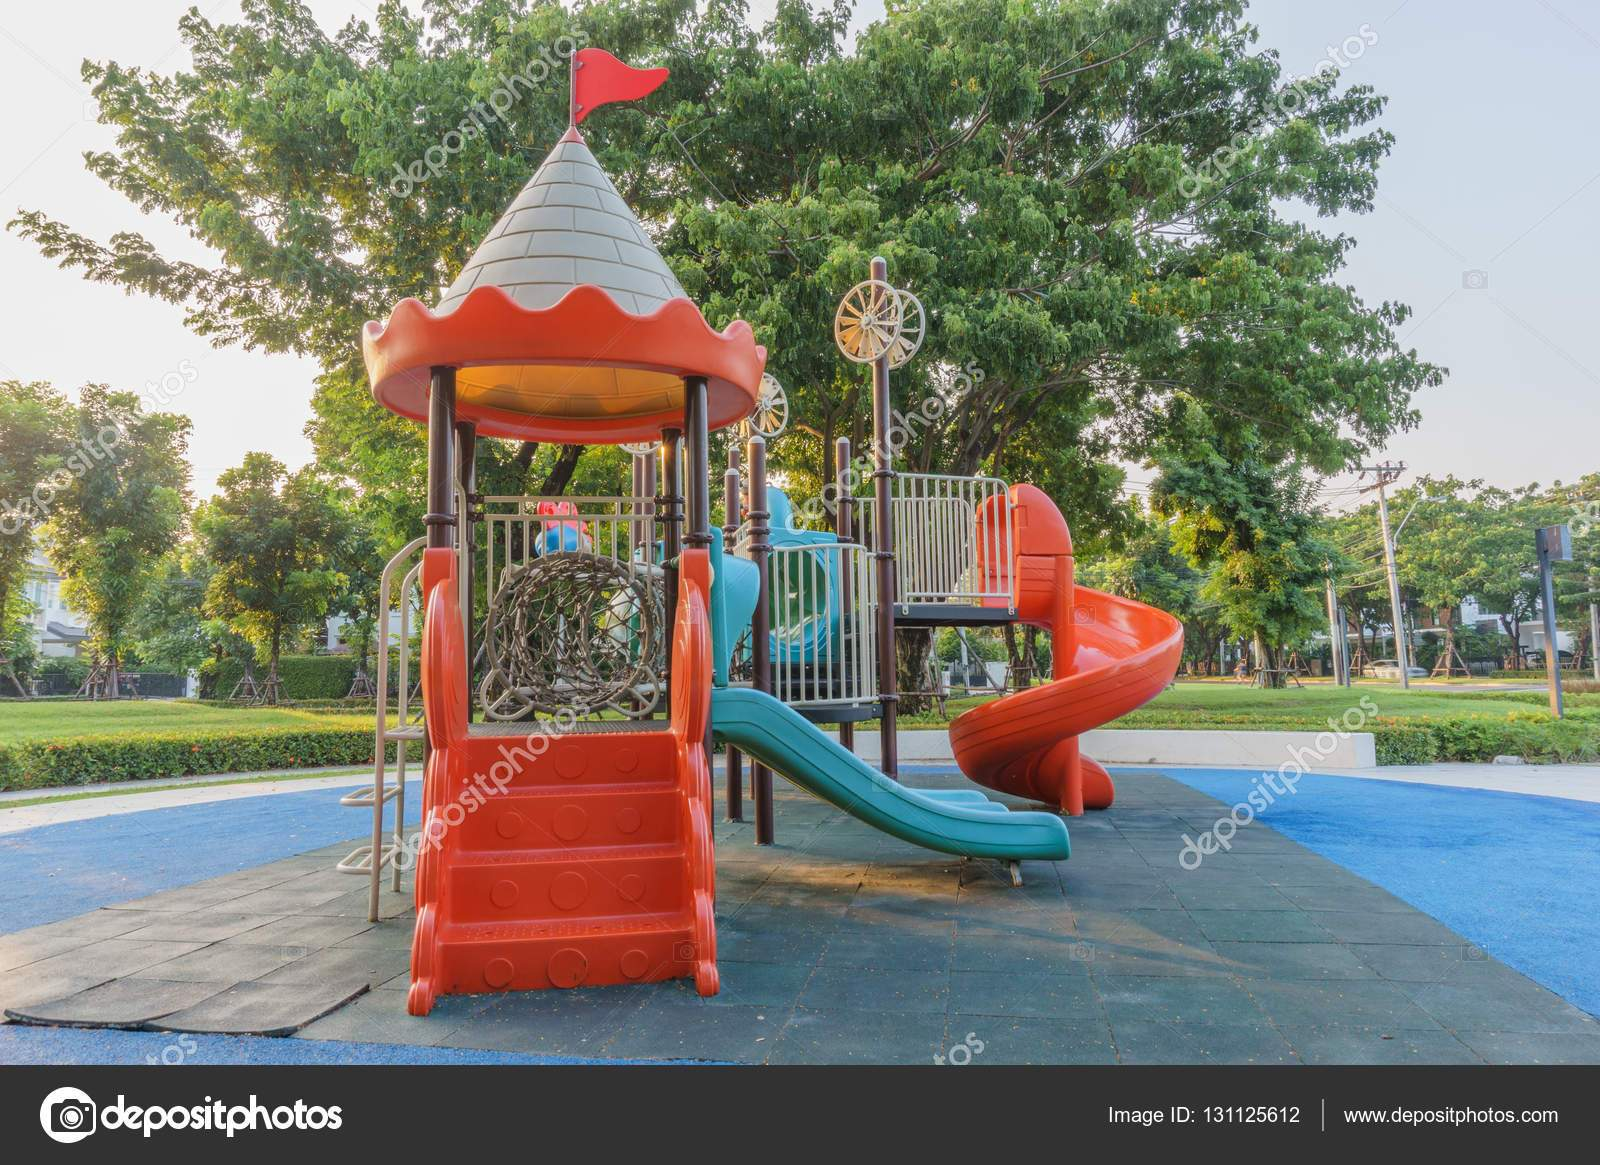 depositphotos stock photo a colorful public playground in